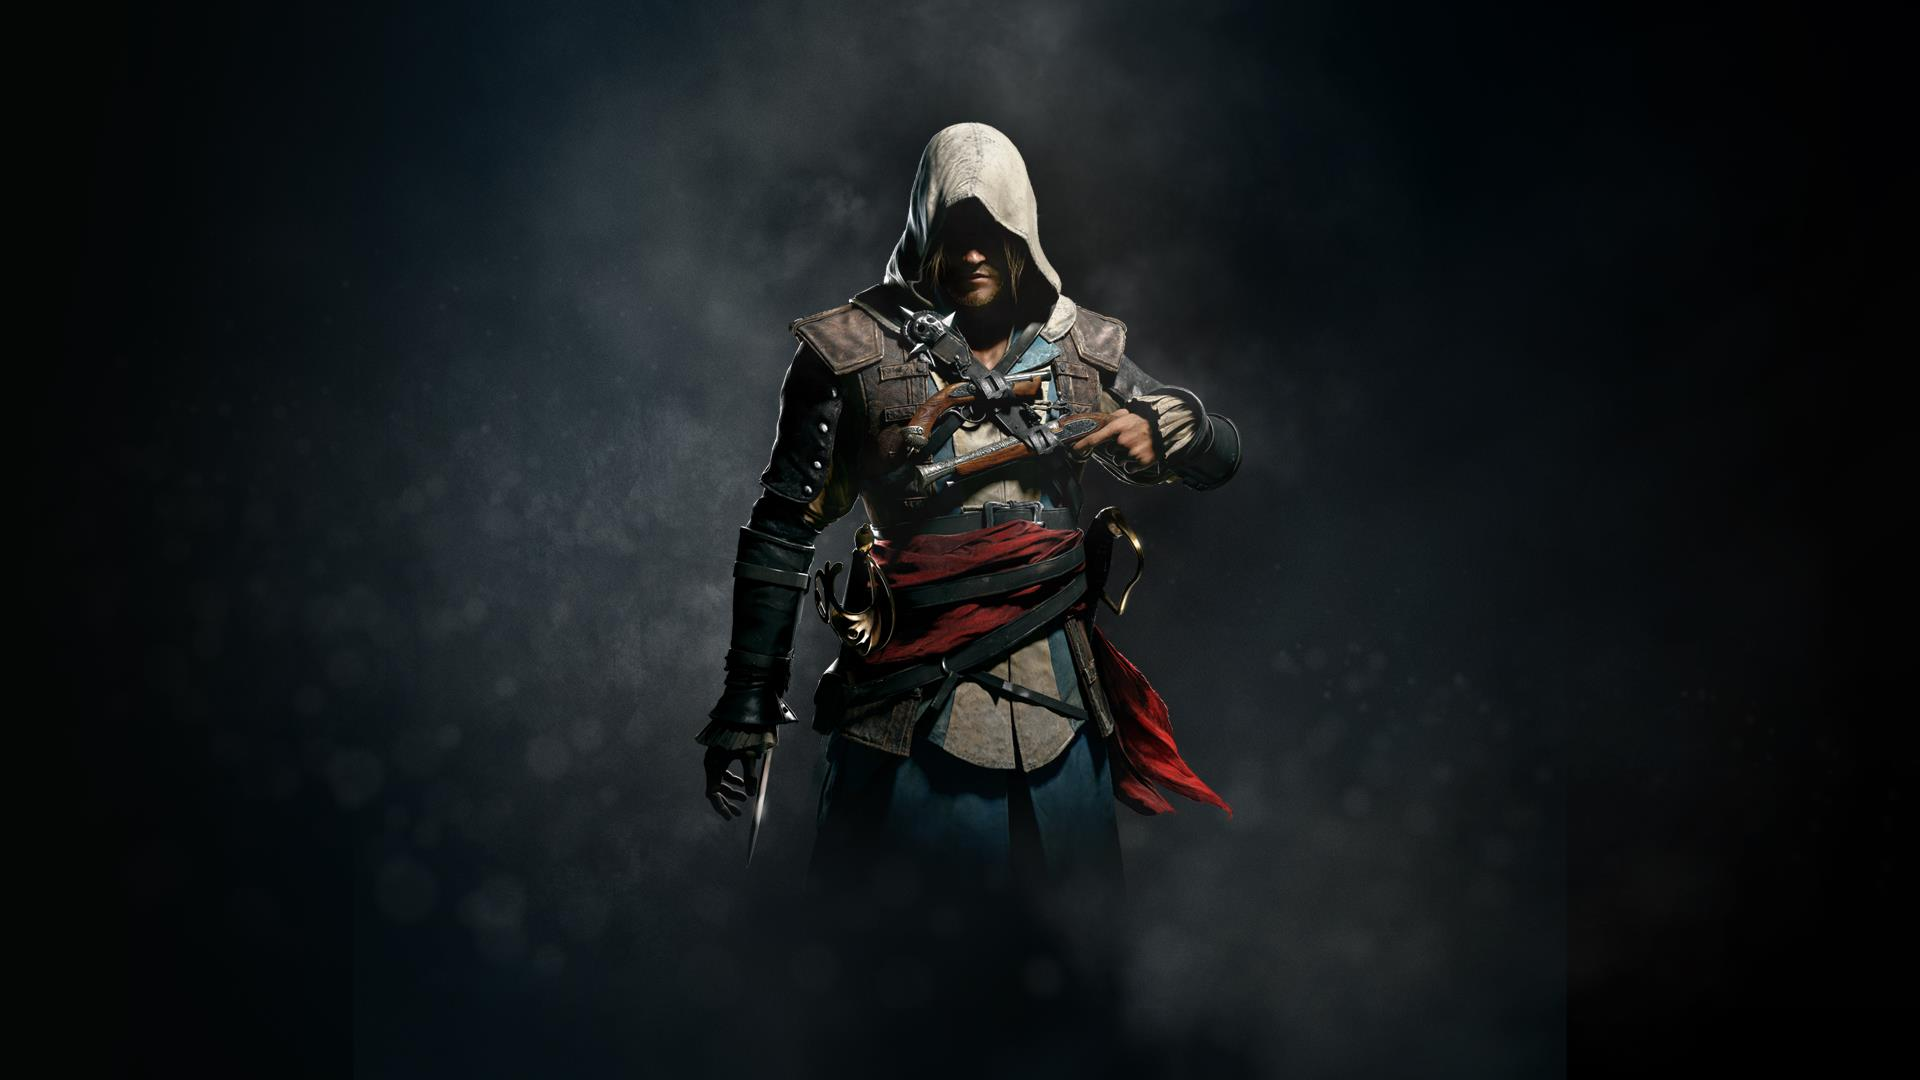 Employee Of The Month in Assassin's Creed IV: Black Flag (Xbox One)